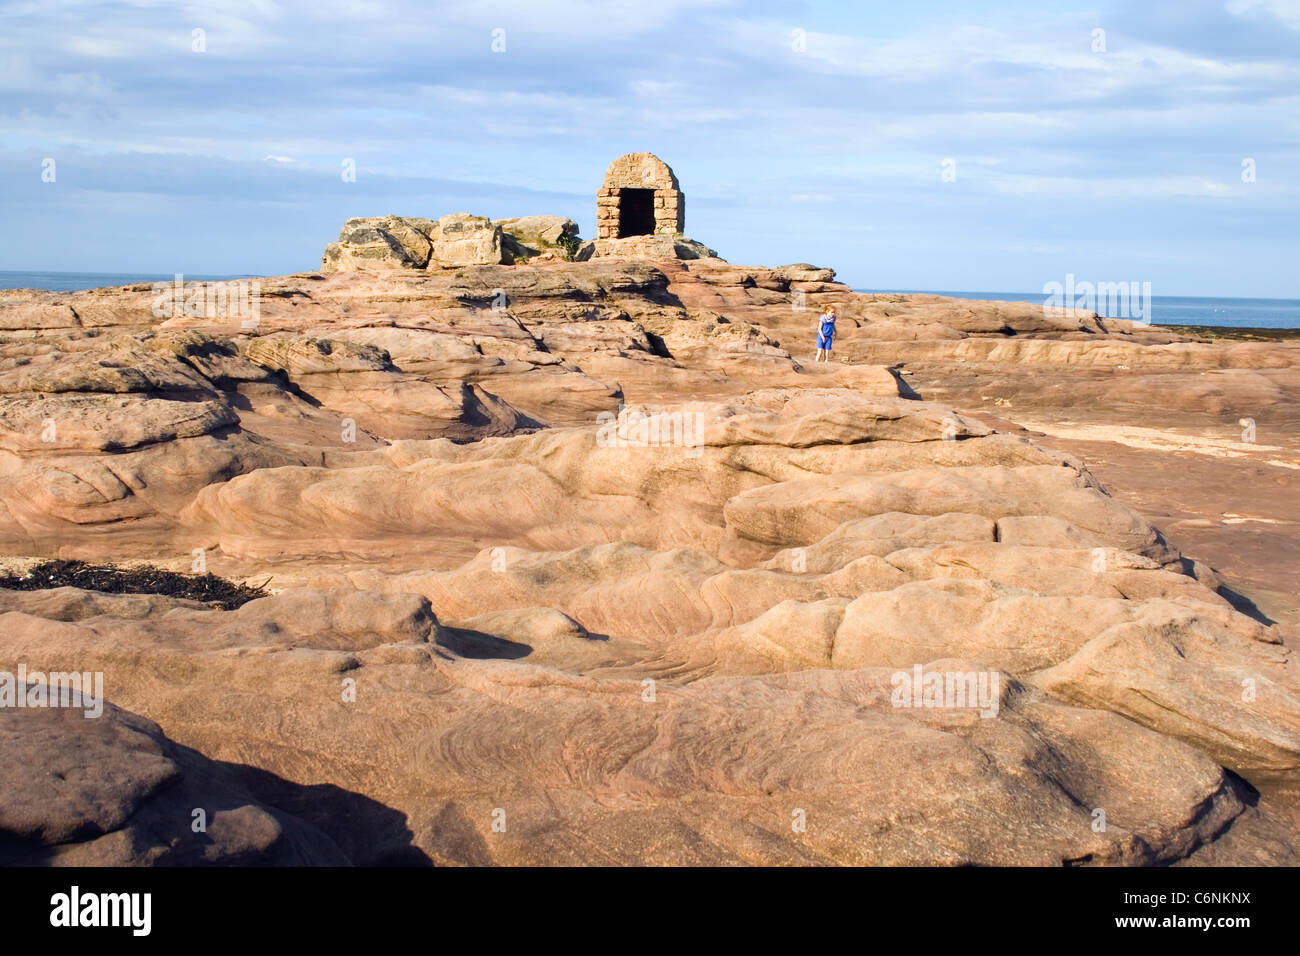 Seahouses, Northumberland, England. Sandstone rock formations. - Stock Image